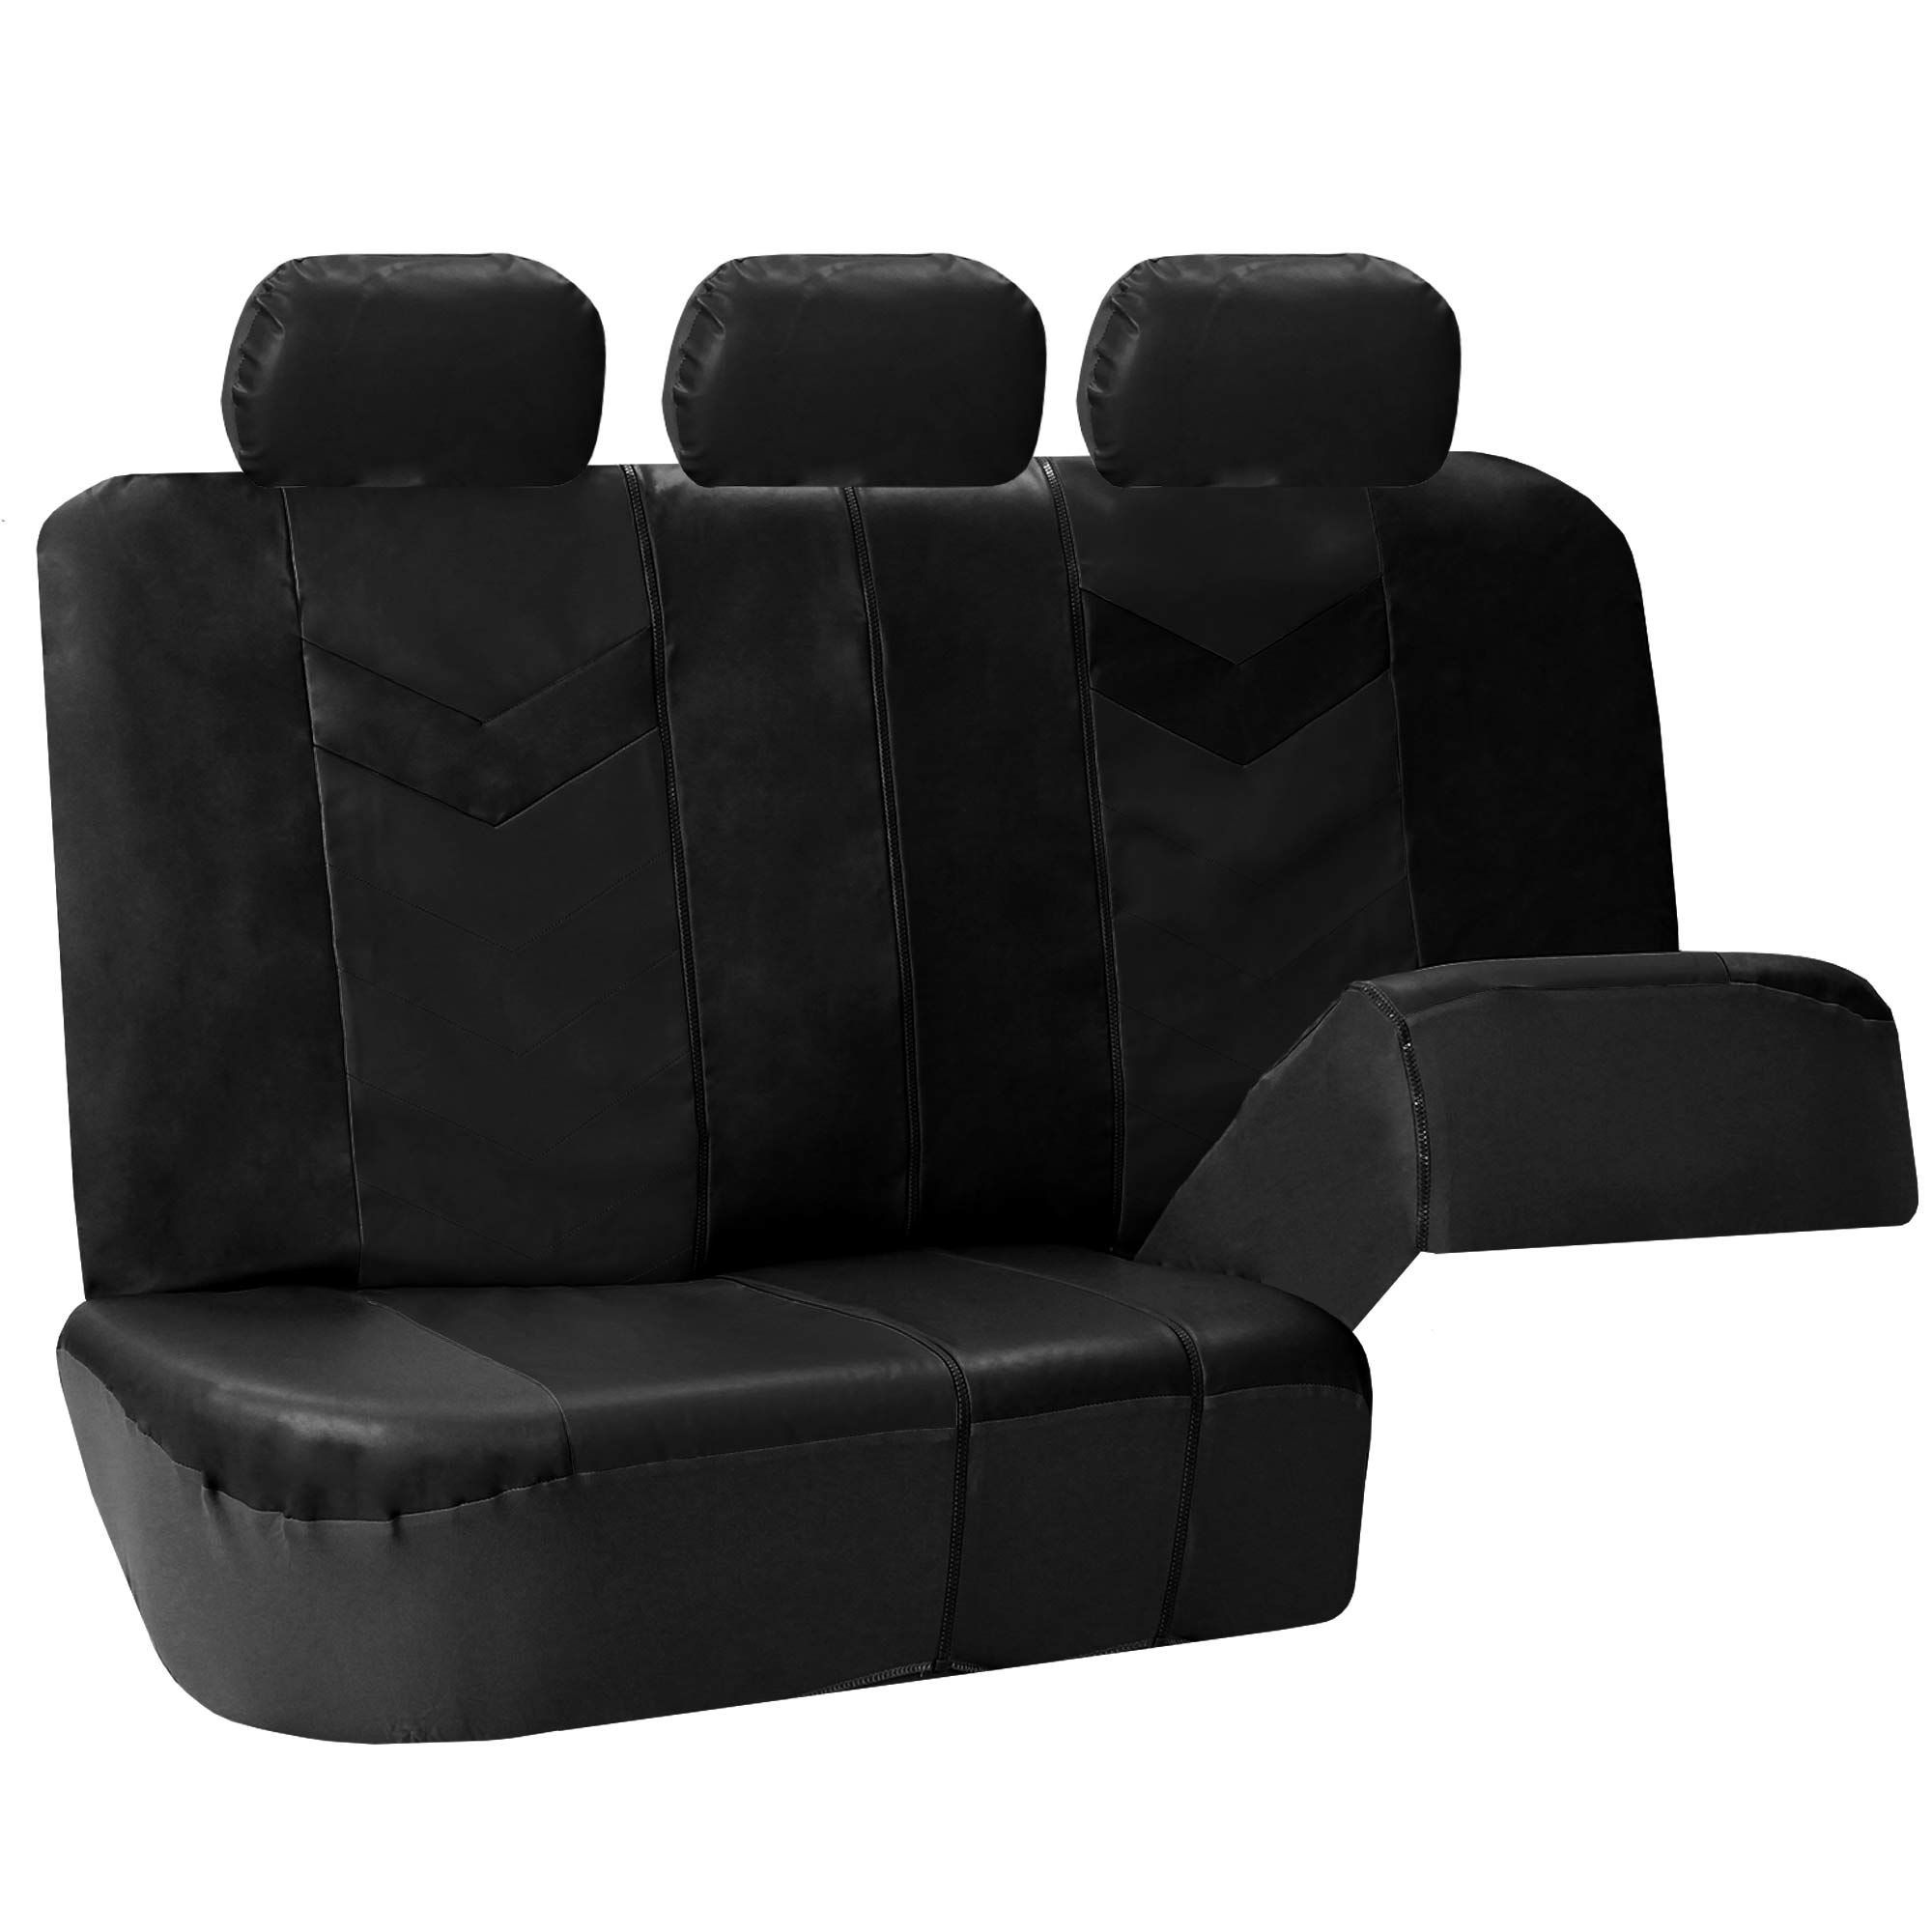 3 Row Car Seat Covers Leather 7 Seater Suv Van Set Black